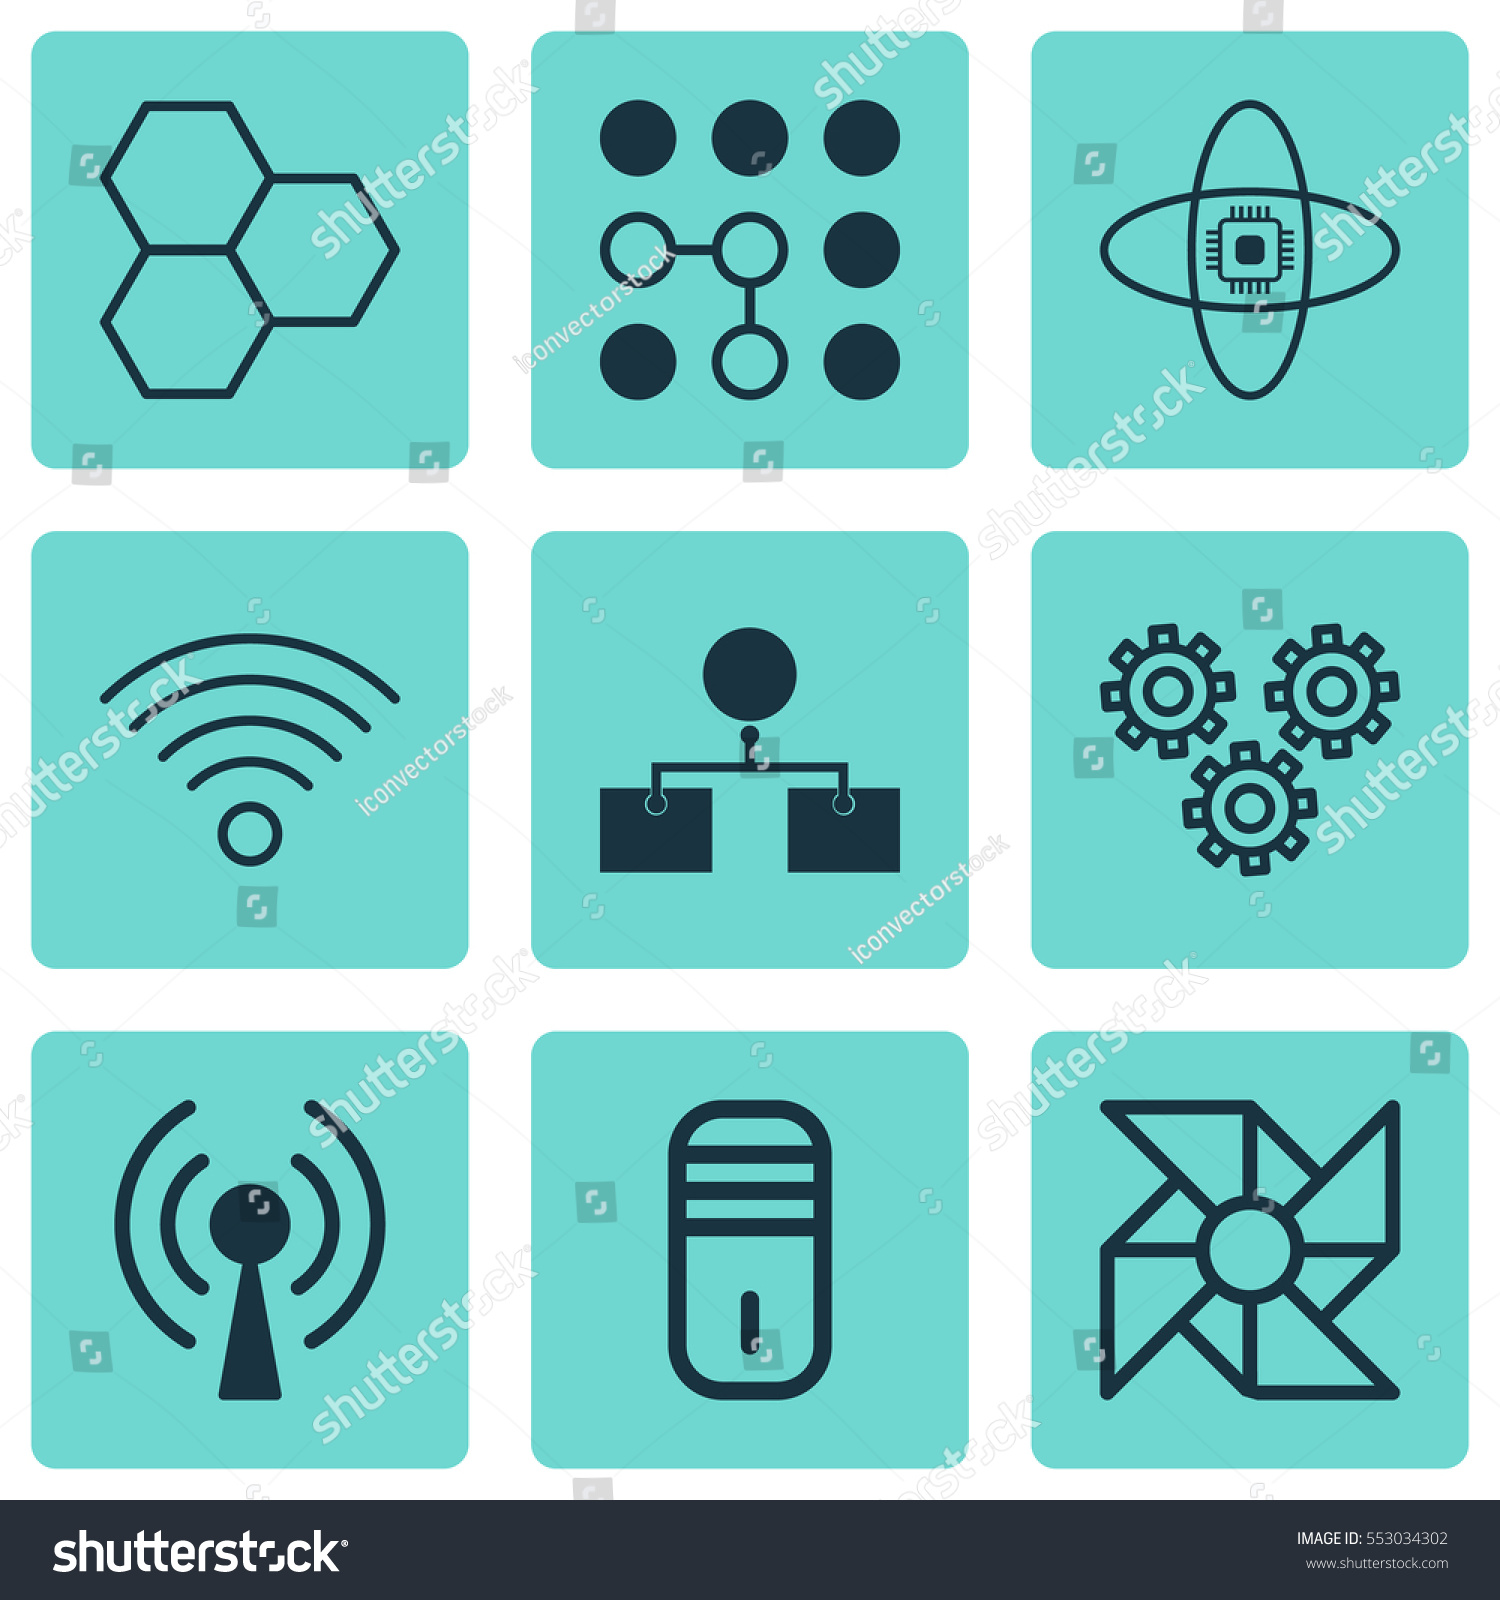 Set 9 Artificial Intelligence Icons Includes Stock Vector Royalty Parts Of A Laptop Computer Diagram Analysis Ventilator Mechanism